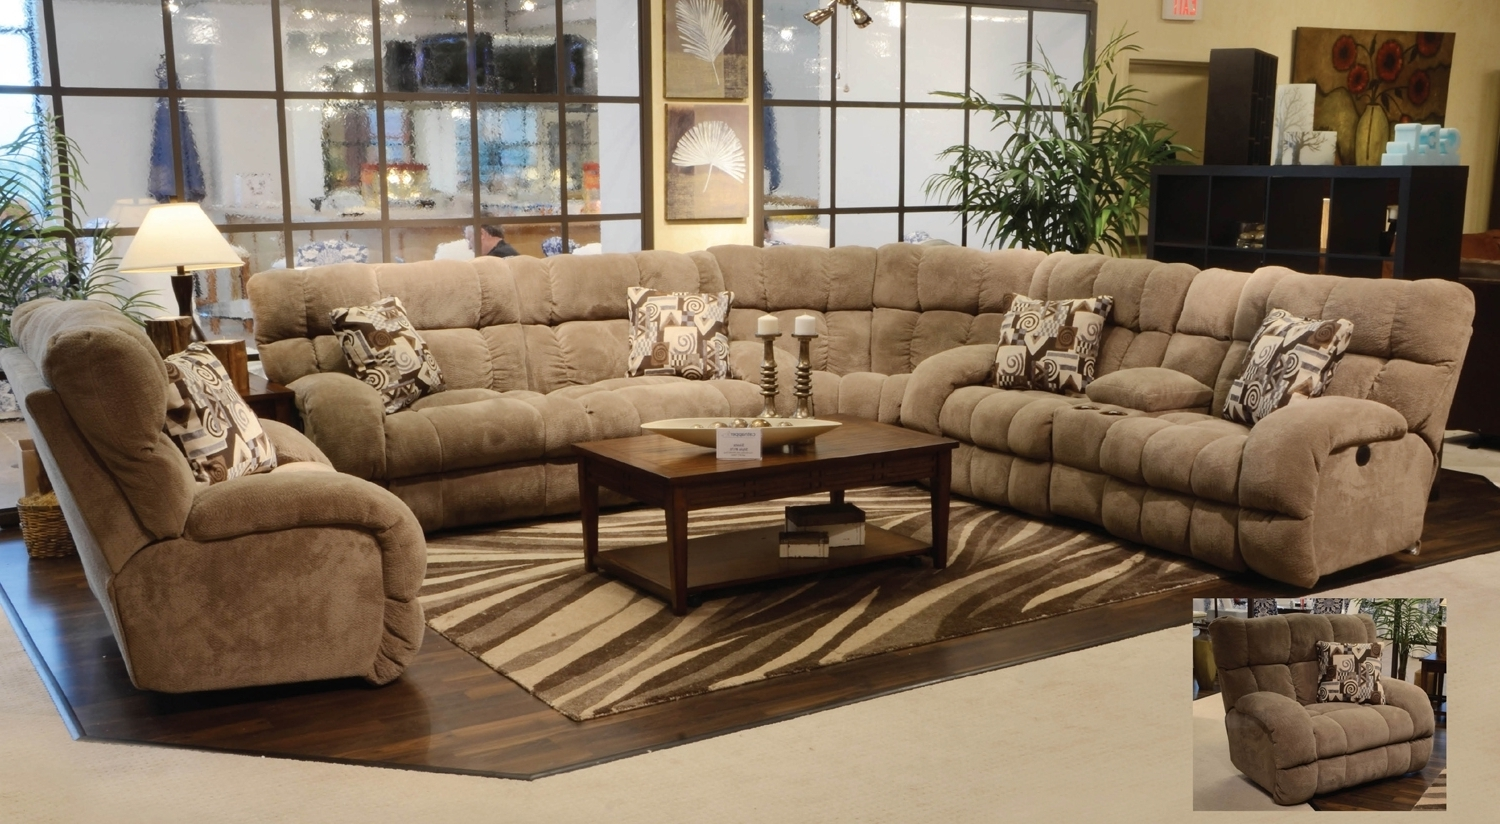 Sofa : Fascinating Large Sectional Sofa Modern Sofas Large In Most Current Huge Sofas (View 12 of 15)